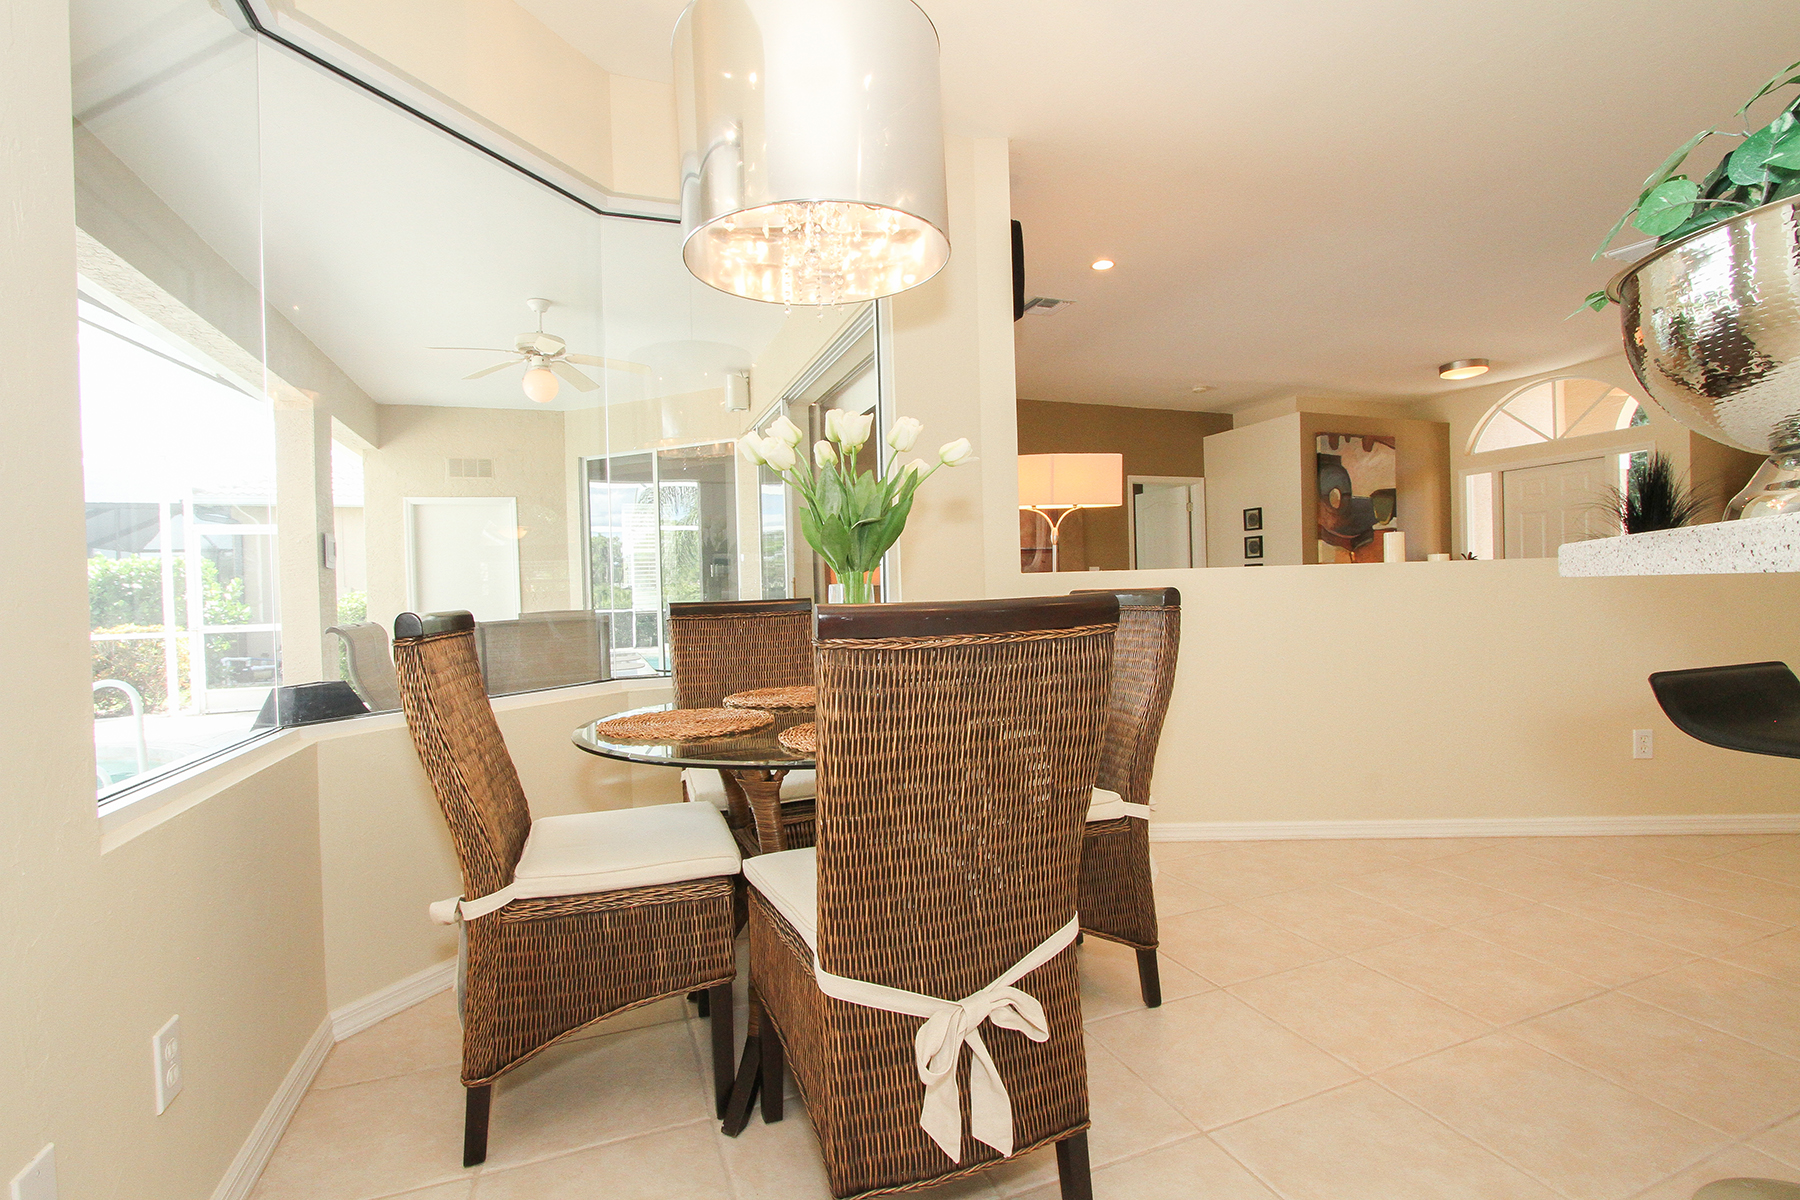 Property Of 26343 Clarkston Dr , Bonita Springs, FL 34135